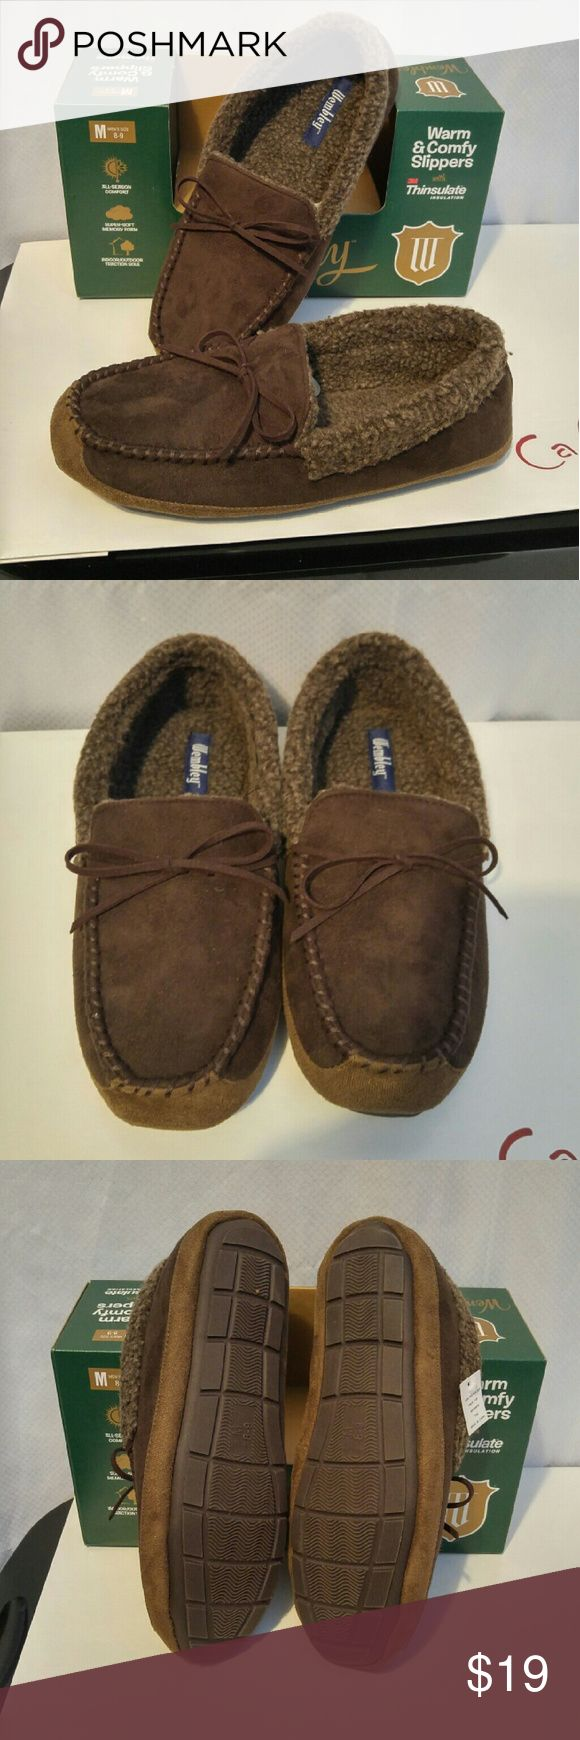 Wembley slipper for mens. Wembley slipper for mens.Size 8/9.Never worn. Wembley Shoes Slippers